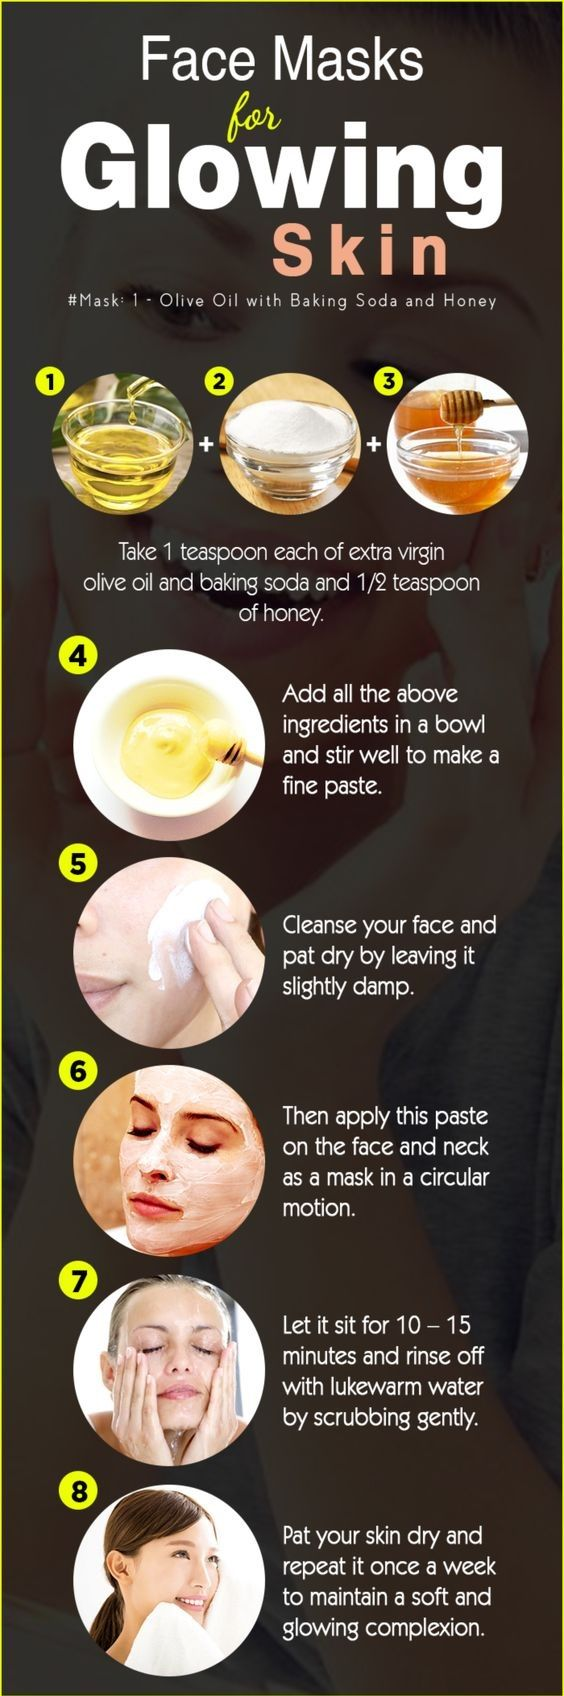 Home remedies for glowing skin in summer  Glowing skin mask, Skin